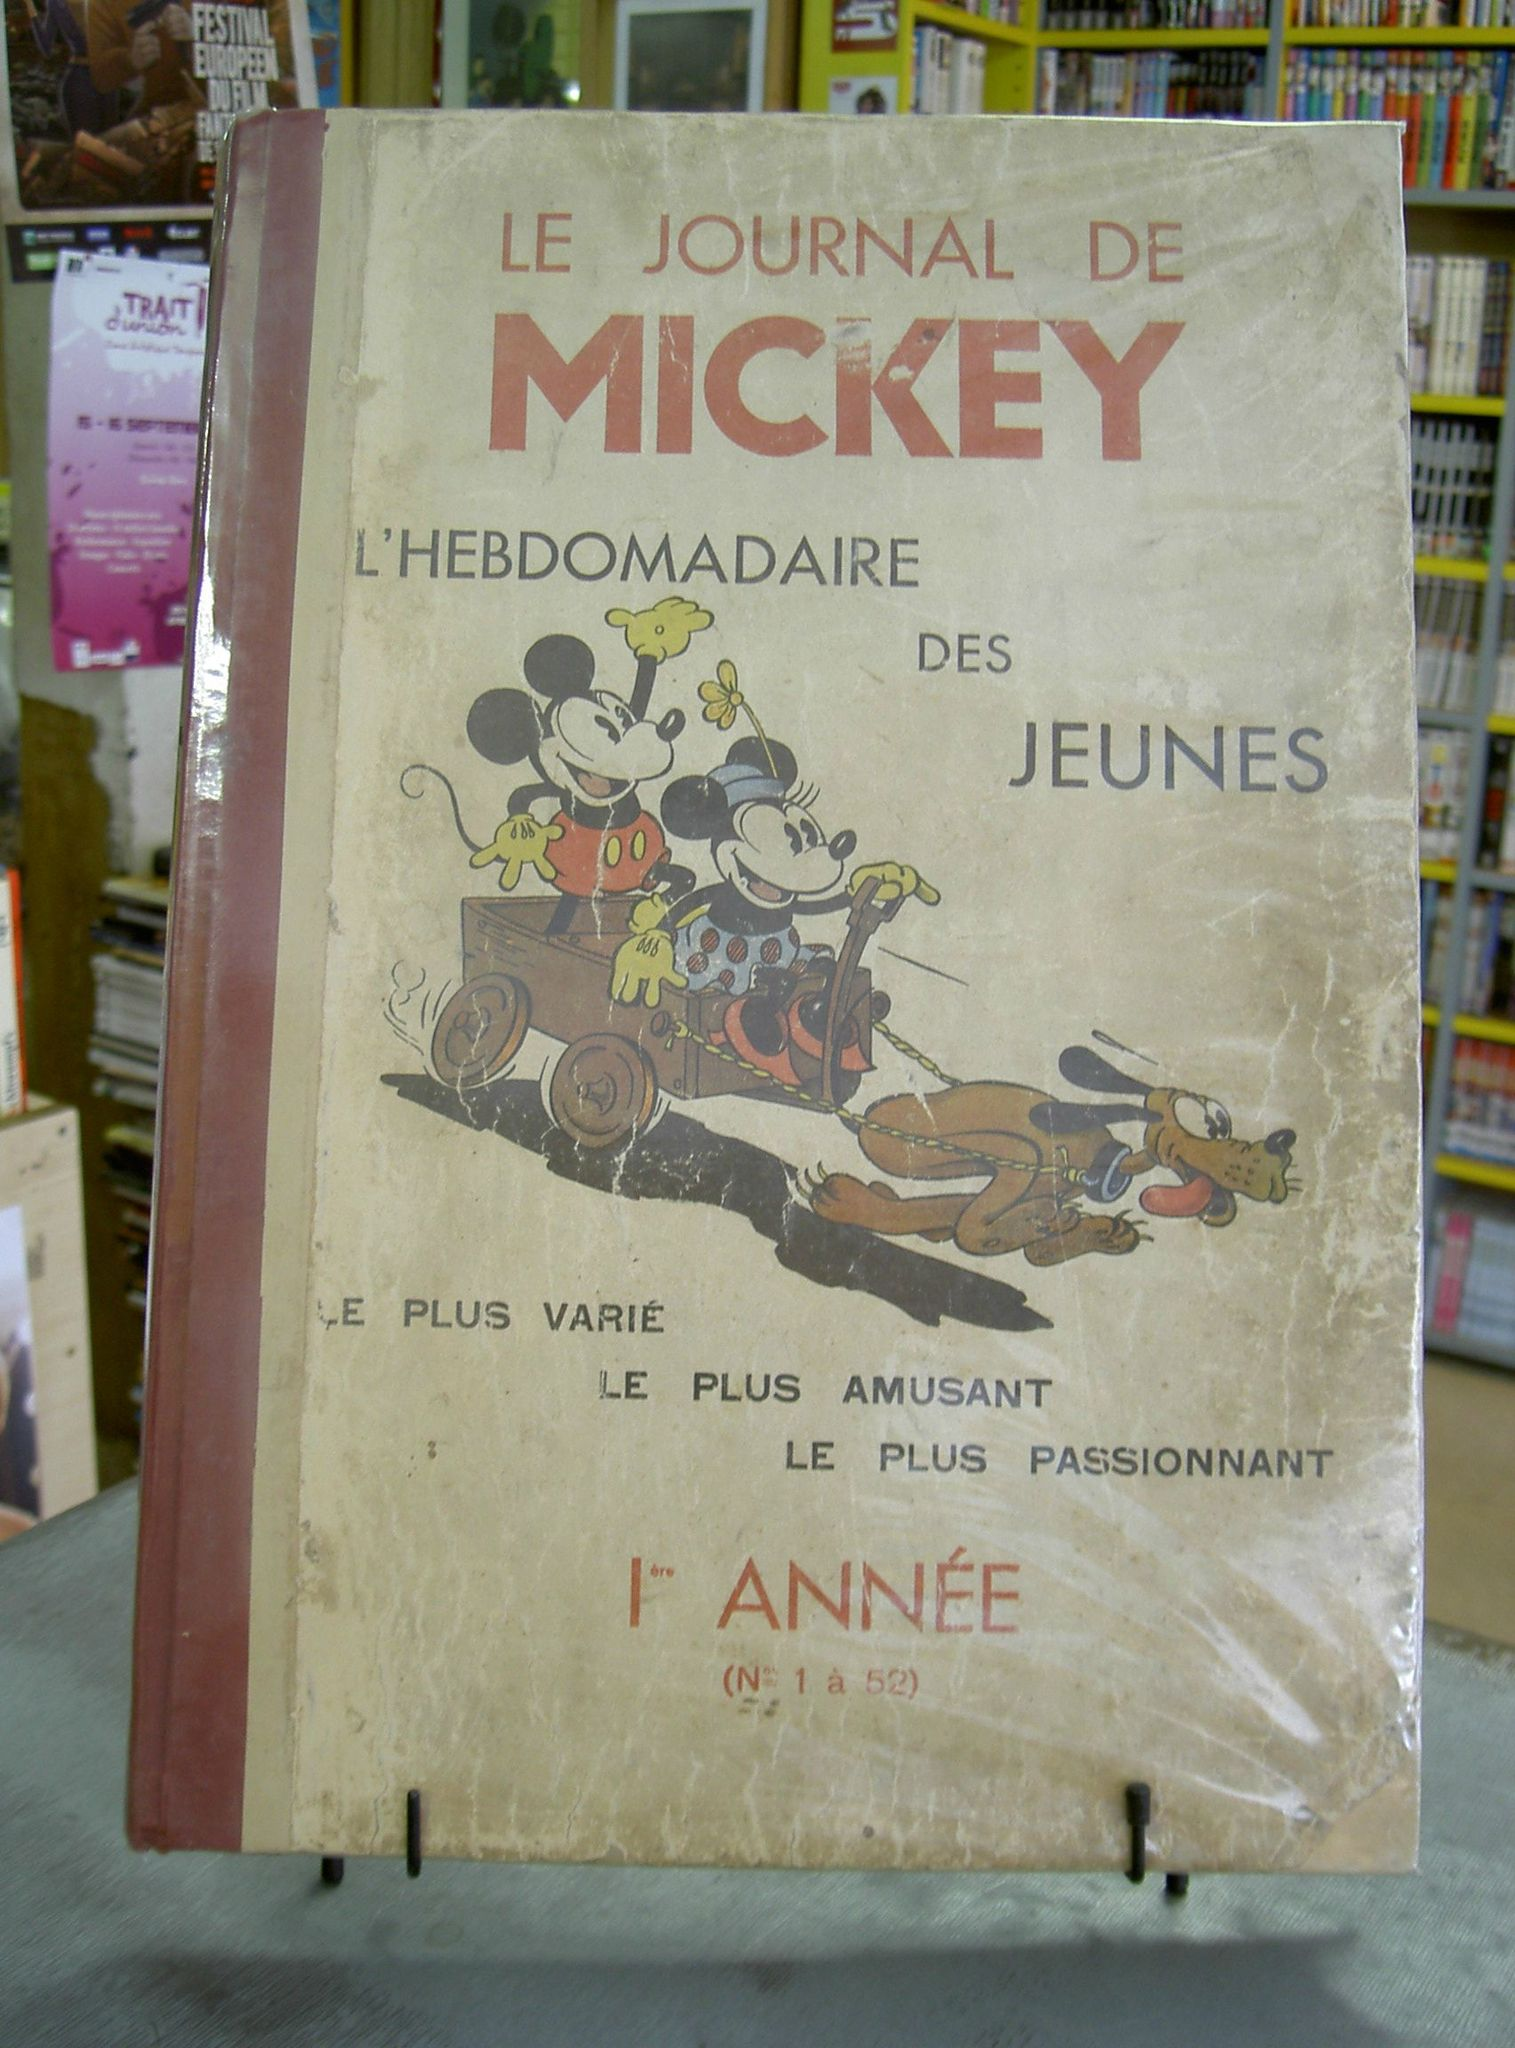 le journal de mickey l 39 hebdomadaire des jeunes 1ere ann e 1934 dispo en magasin librairie. Black Bedroom Furniture Sets. Home Design Ideas